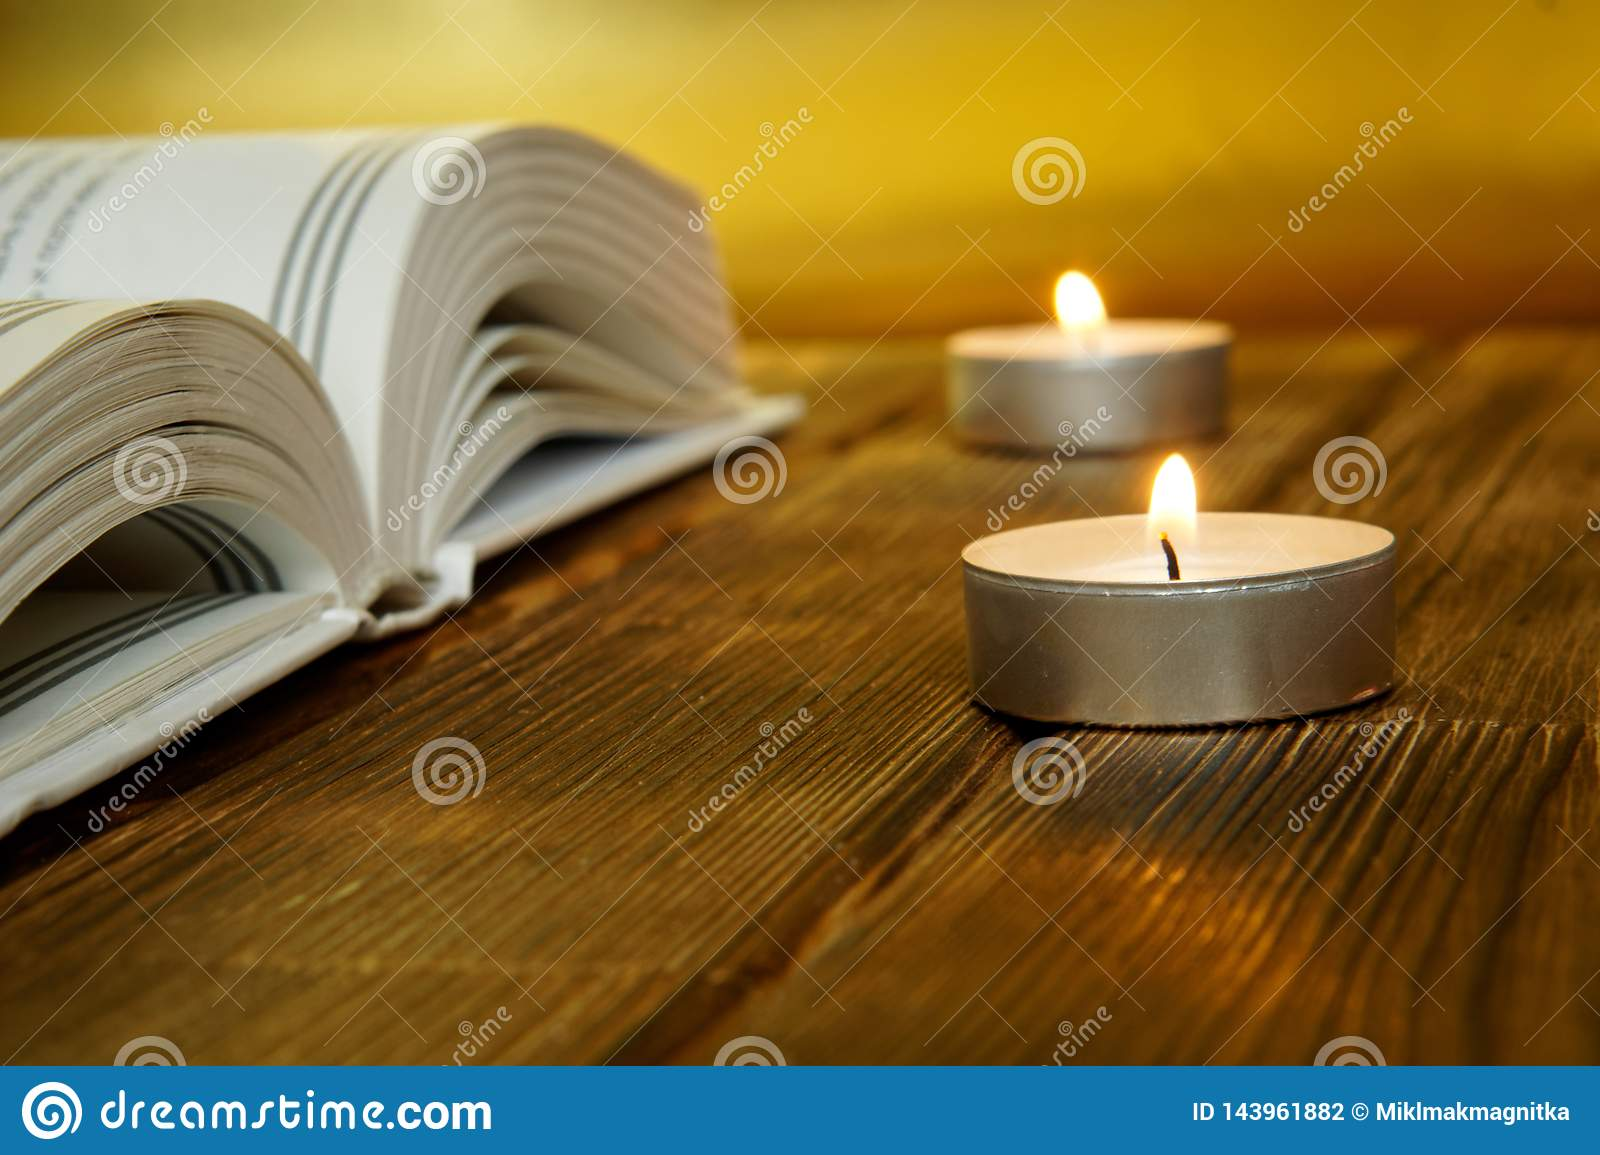 An open book about religion and faith lies on wooden planks on a golden background. Nearby are lit candles